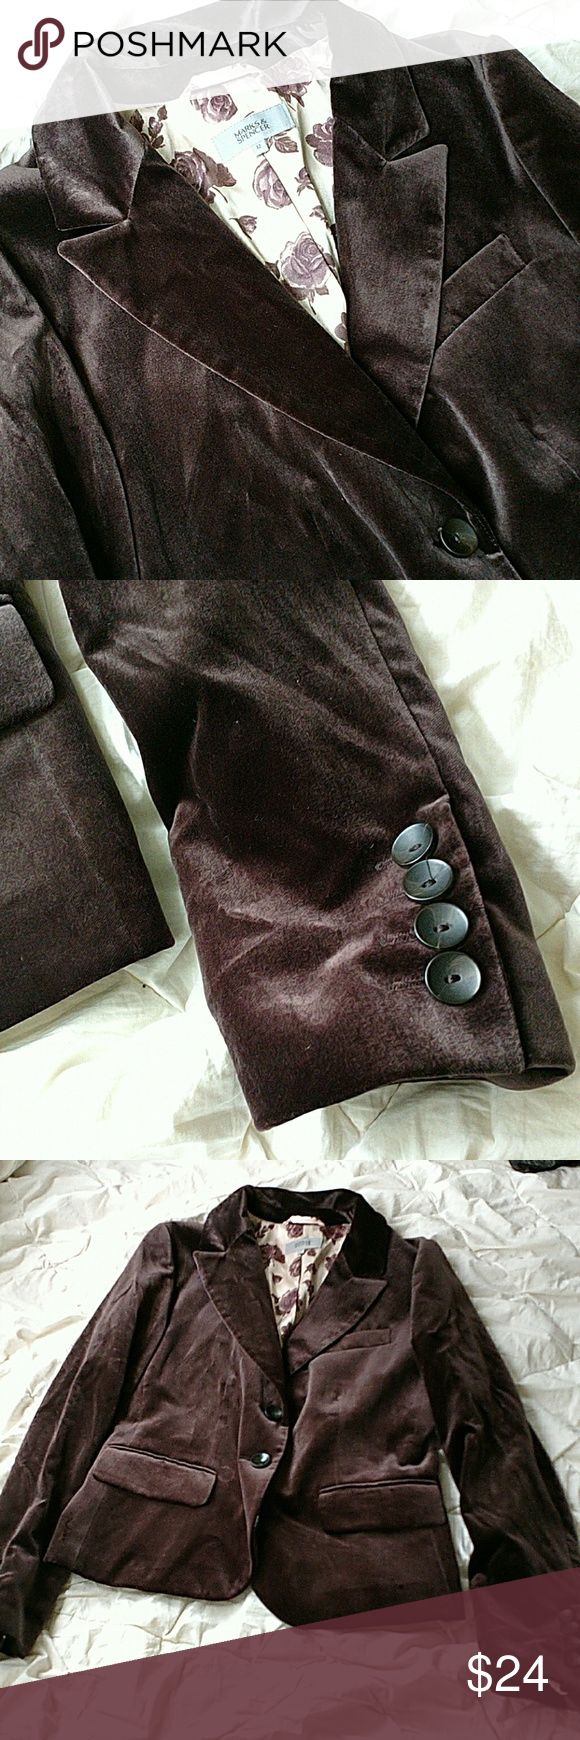 "Marks&Spencer women's brown velvet blazer fall Marks & Spencer women's brown velvet blazer with floral lining, size UK12(US 8). Gently used with no flaws.  Flat Lay Bust: 19"" Length: 23"" Marks & Spencer Jackets & Coats Blazers"